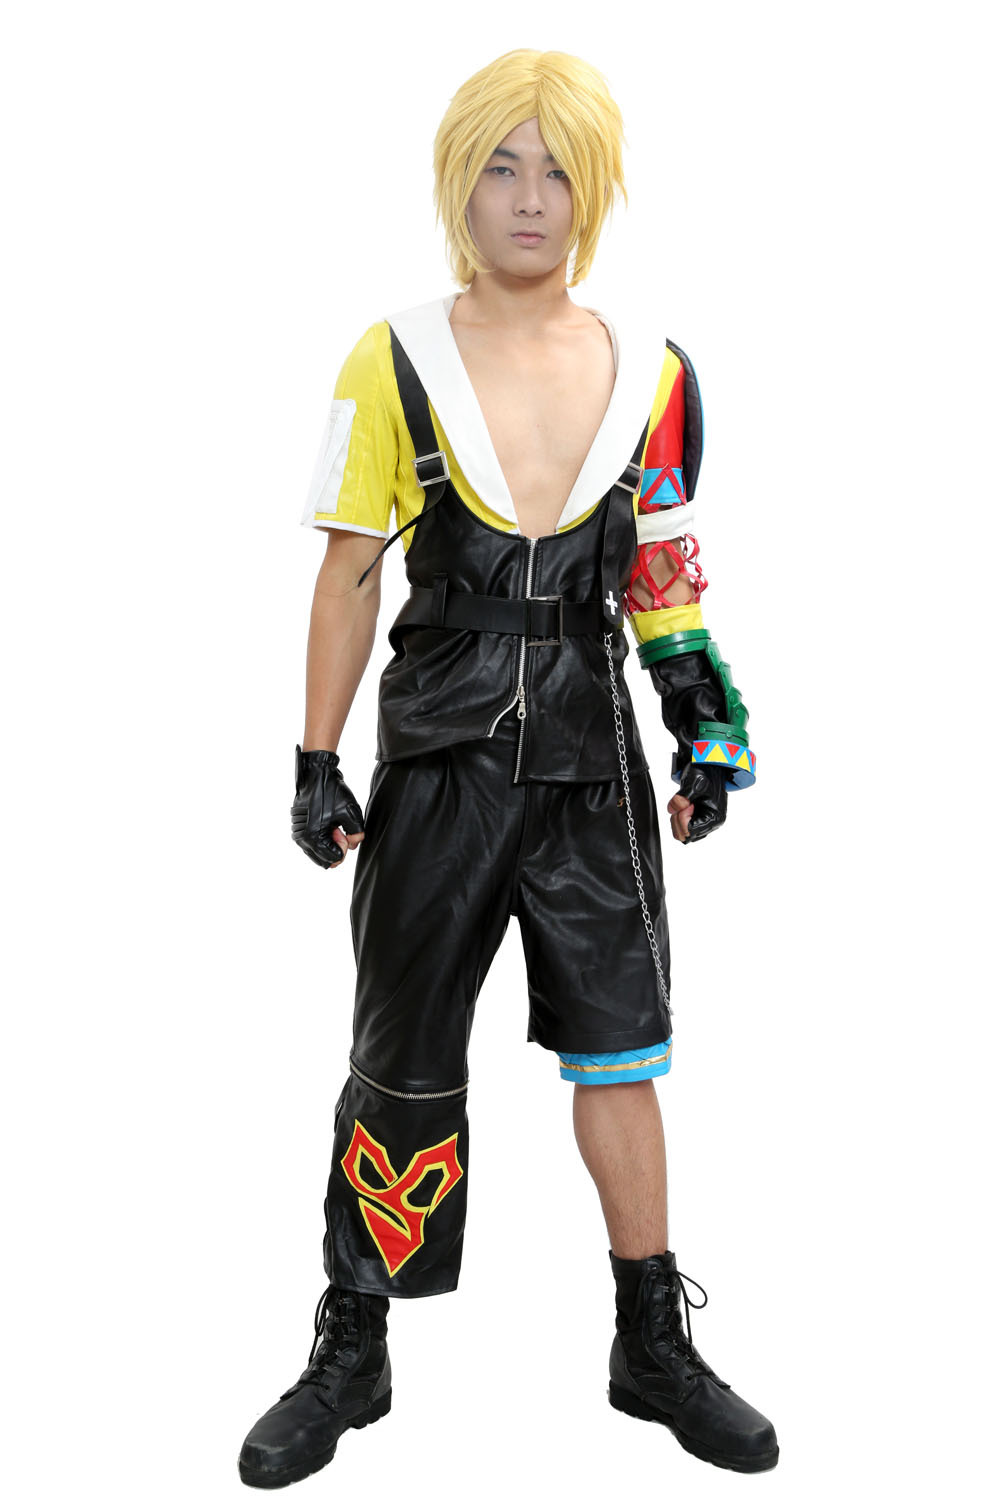 Final Fantasy Tidus Cosplay Costume Final Fantasy X Cosplay PU Outfit AdultОдежда и ак�е��уары<br><br><br>Aliexpress